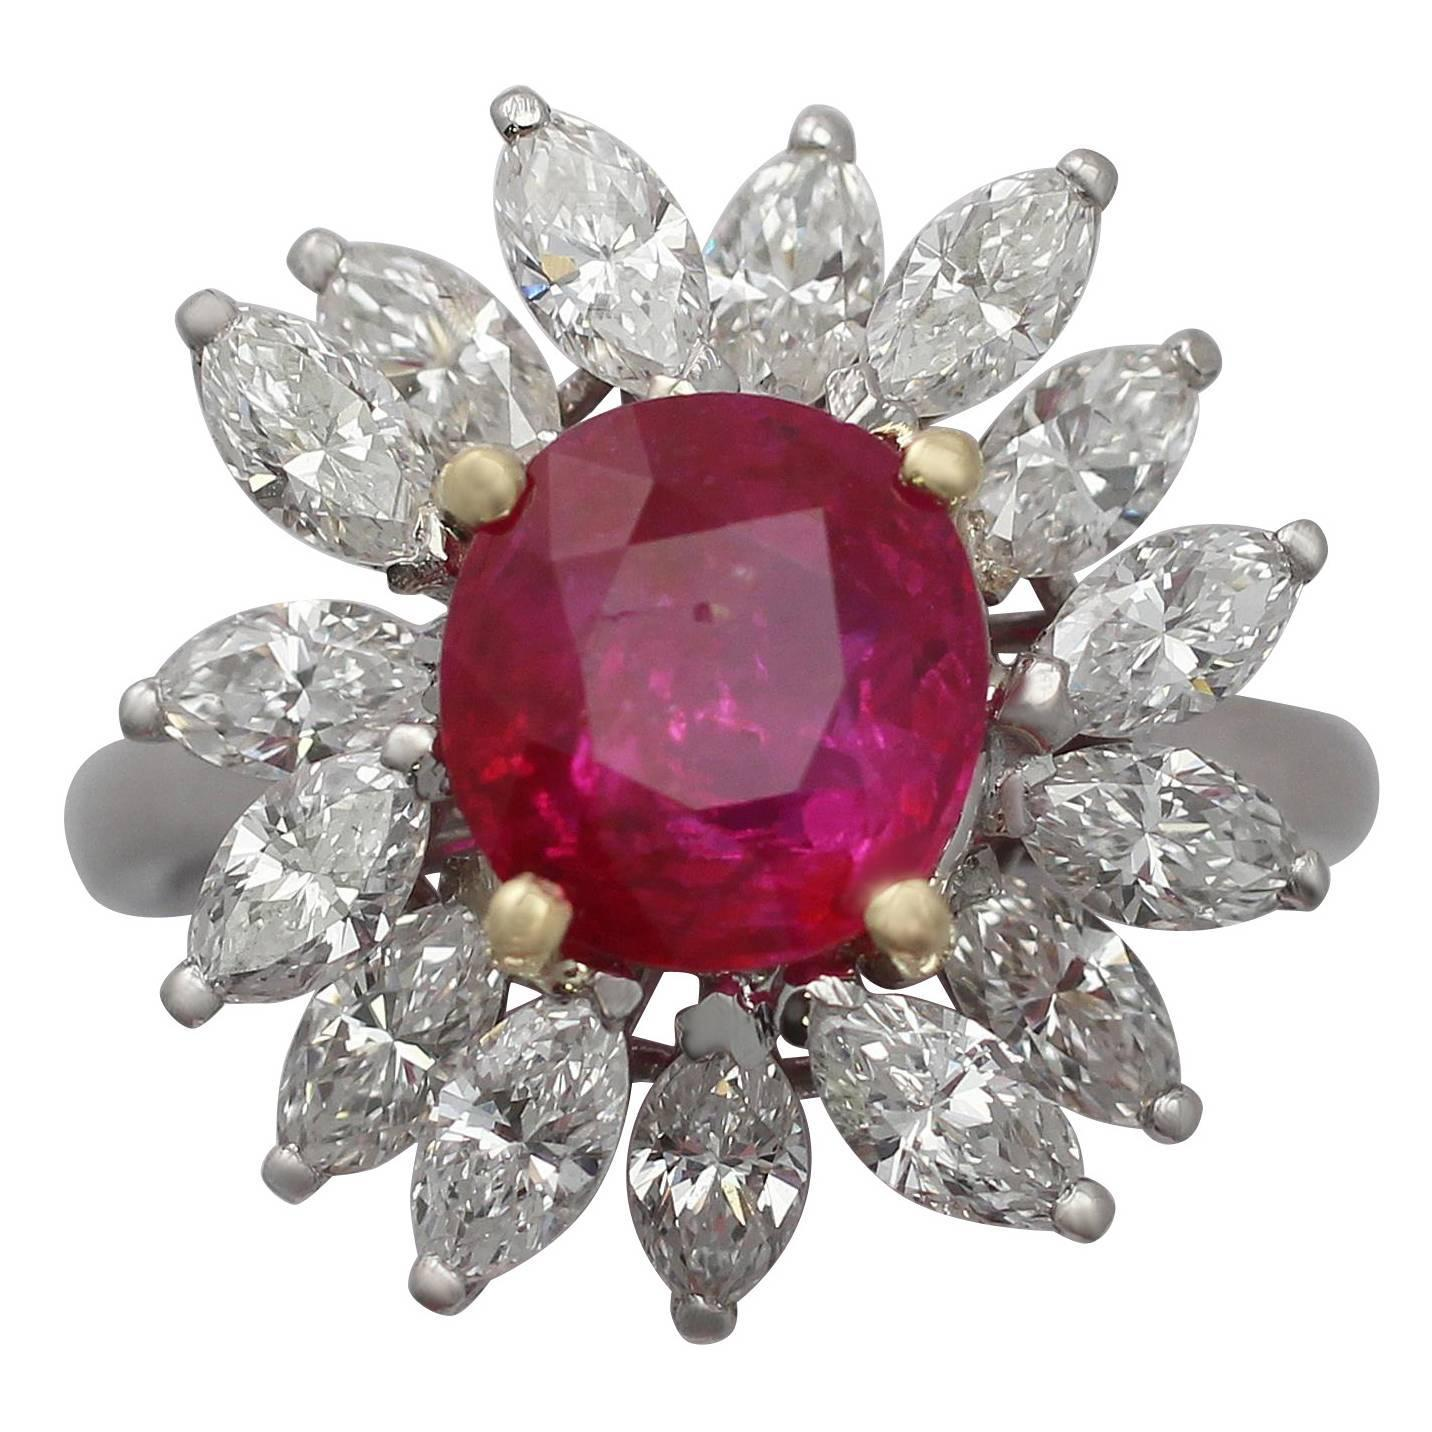 230ct Ruby And 185ct Diamond, Platinum Cluster Ring  Vintage French  Circa 1960 For Sale At 1stdibs